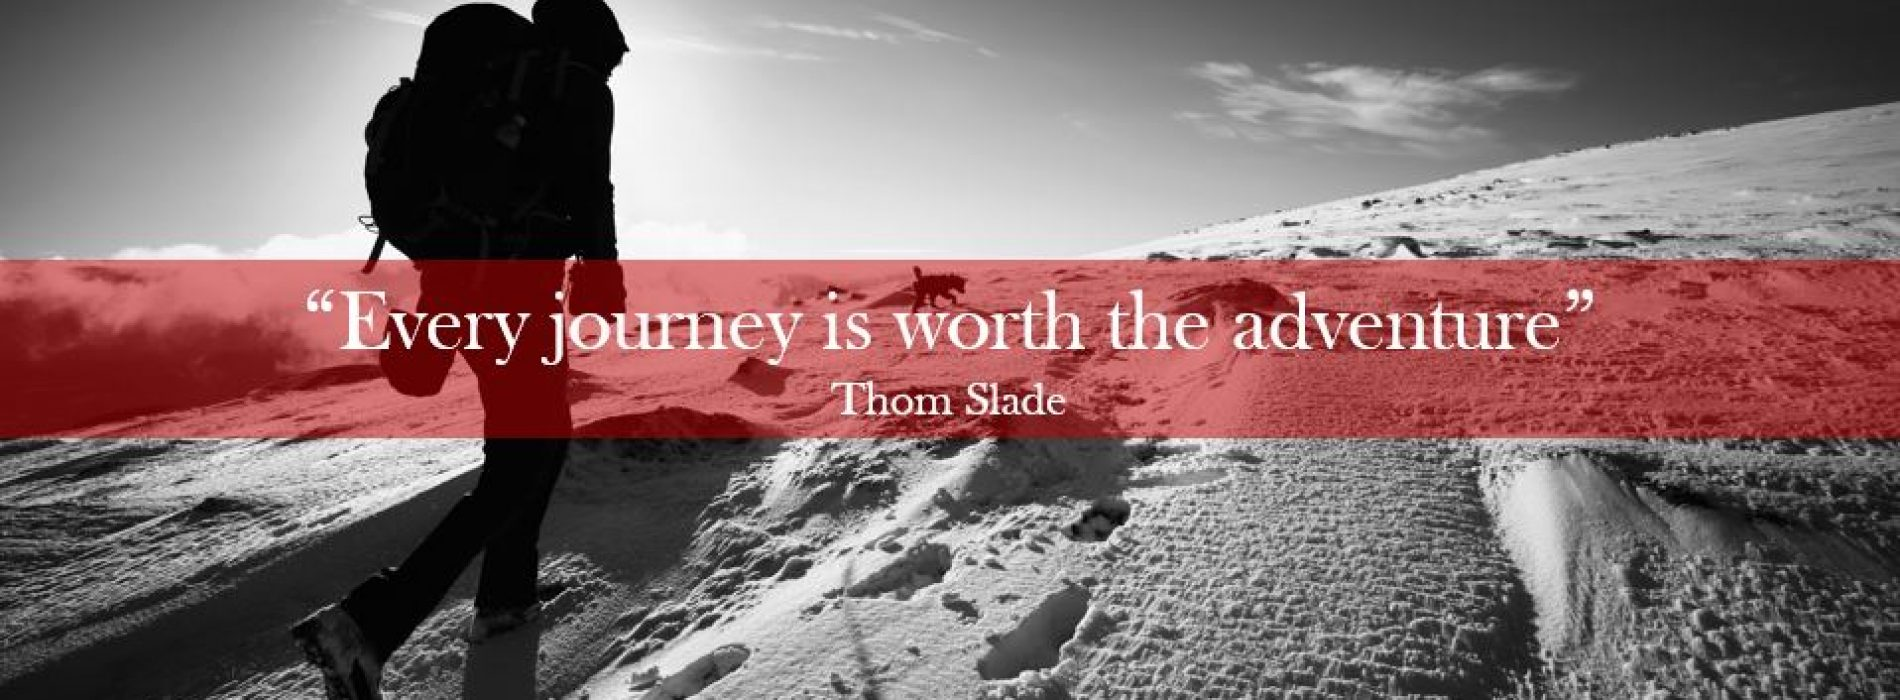 """Every journey is worth the adventure"" – Thomism No. 131"